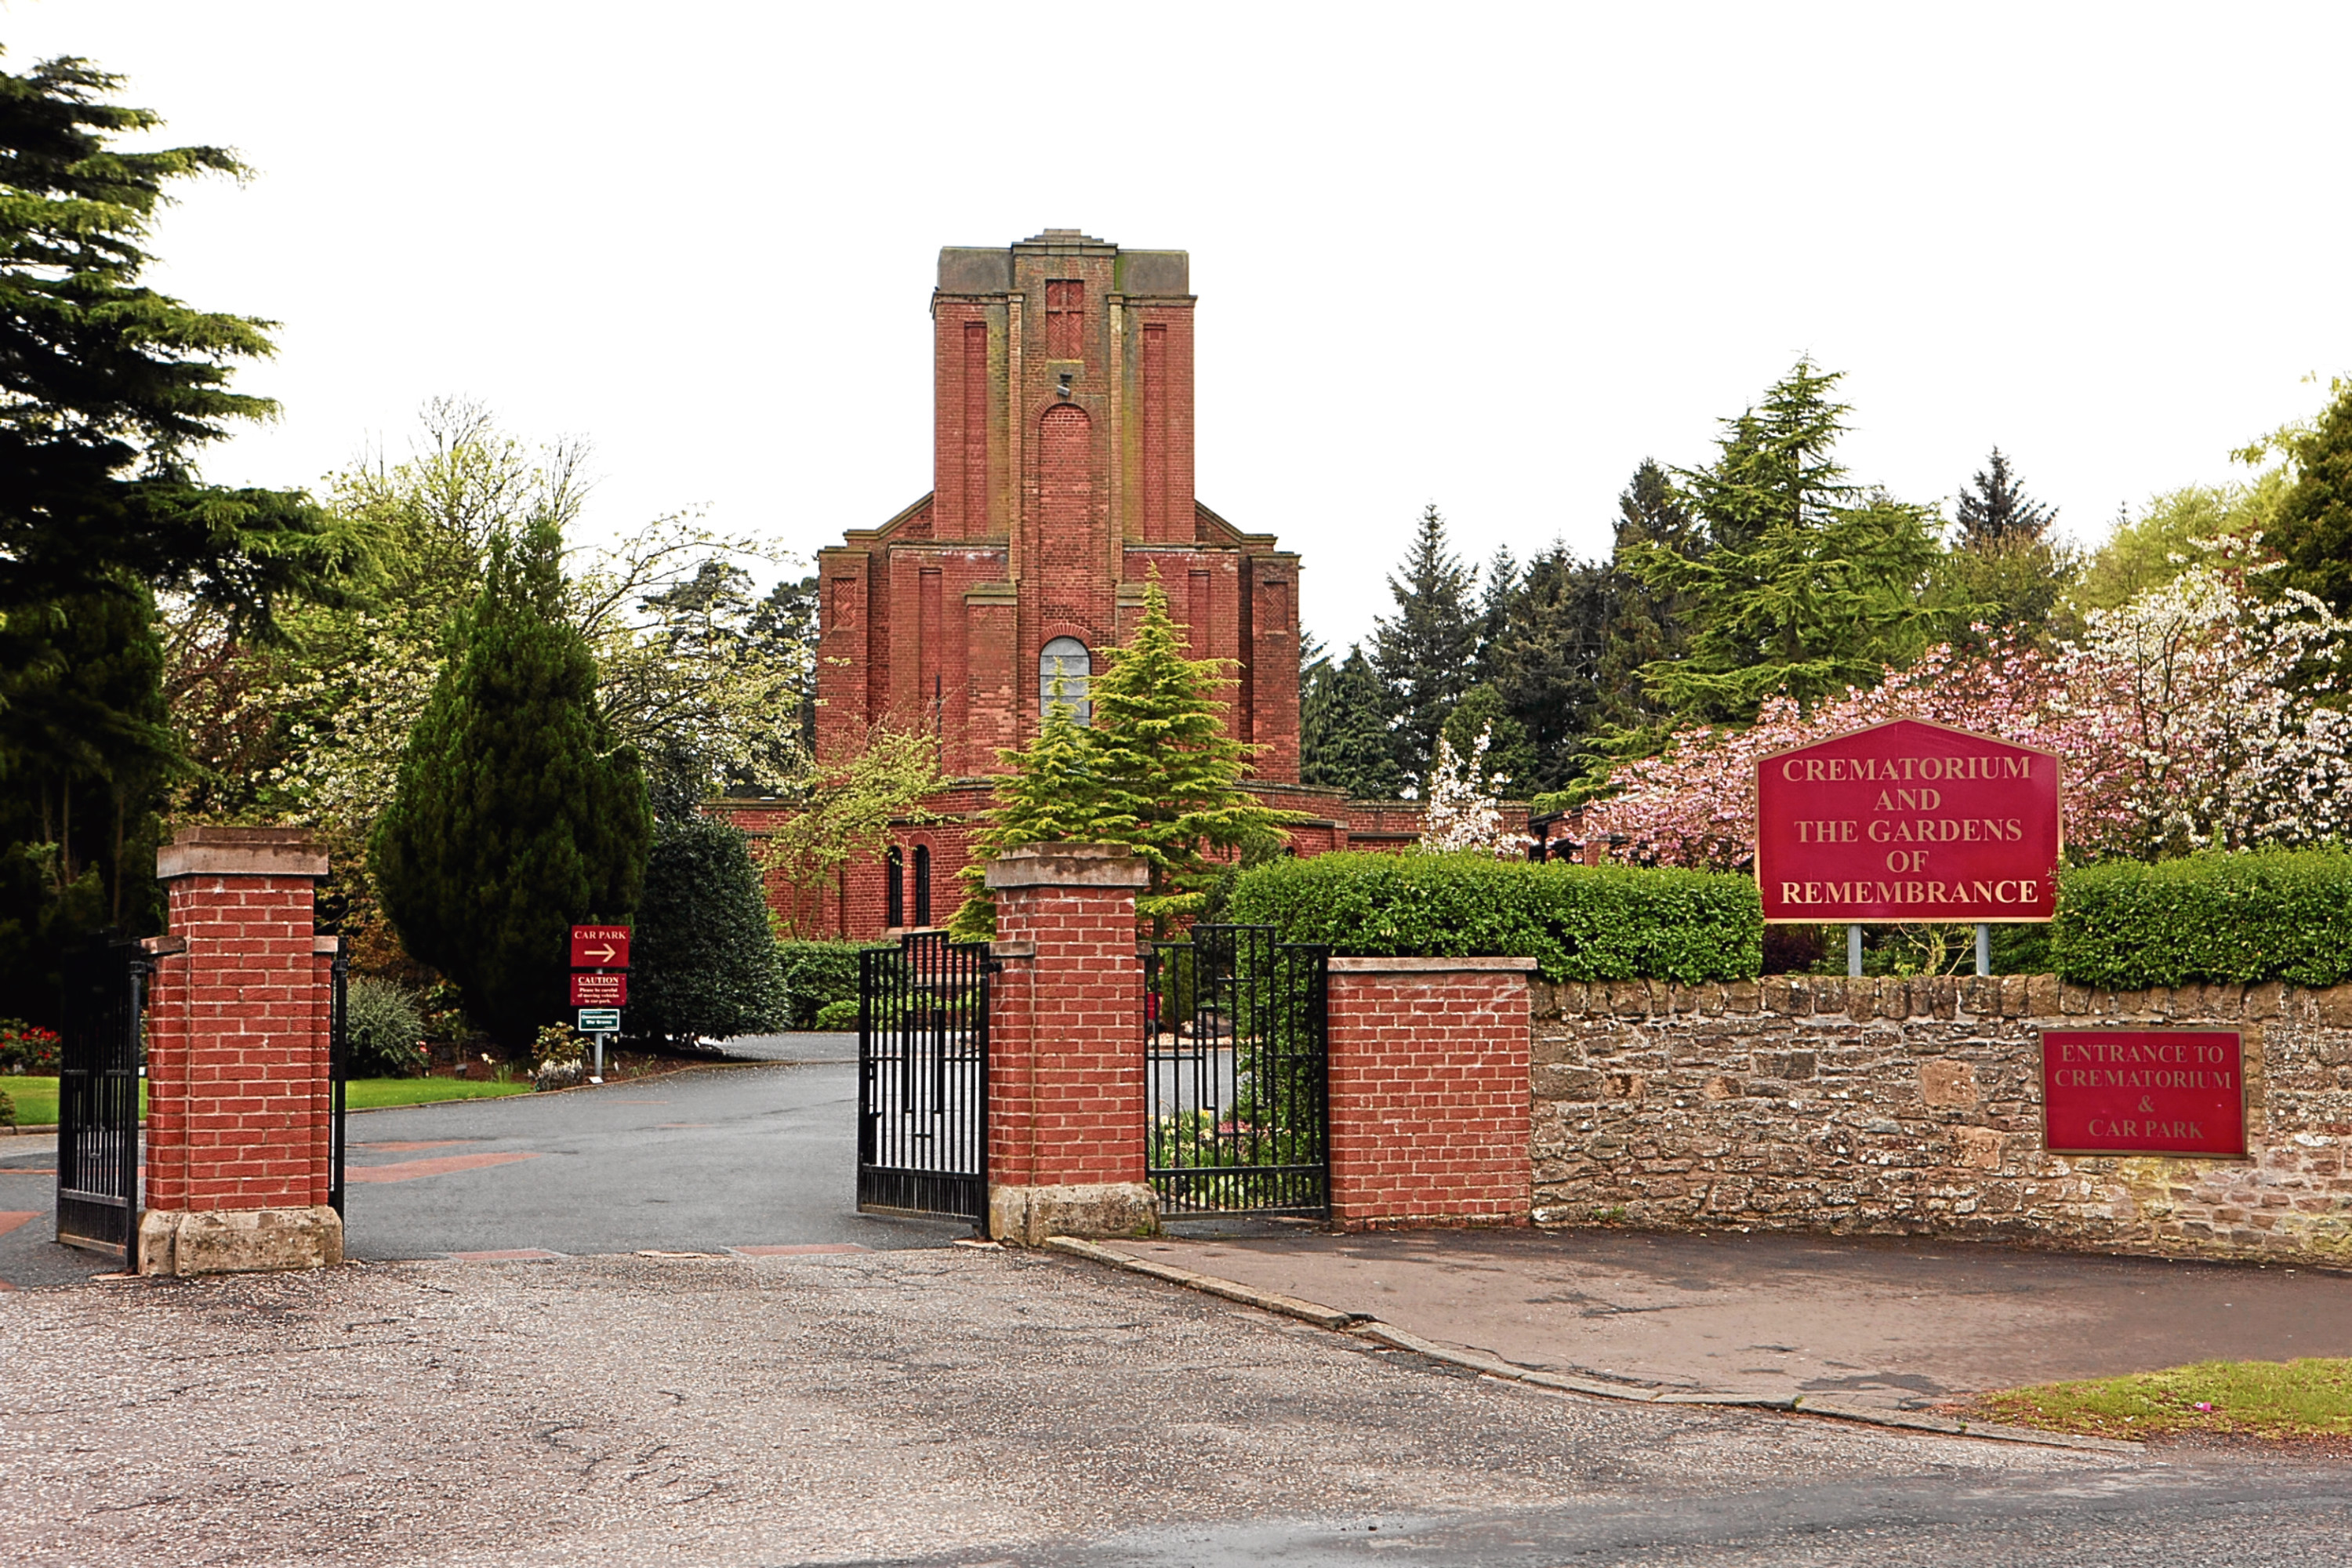 Dundee Crematorium, where many city funerals are held